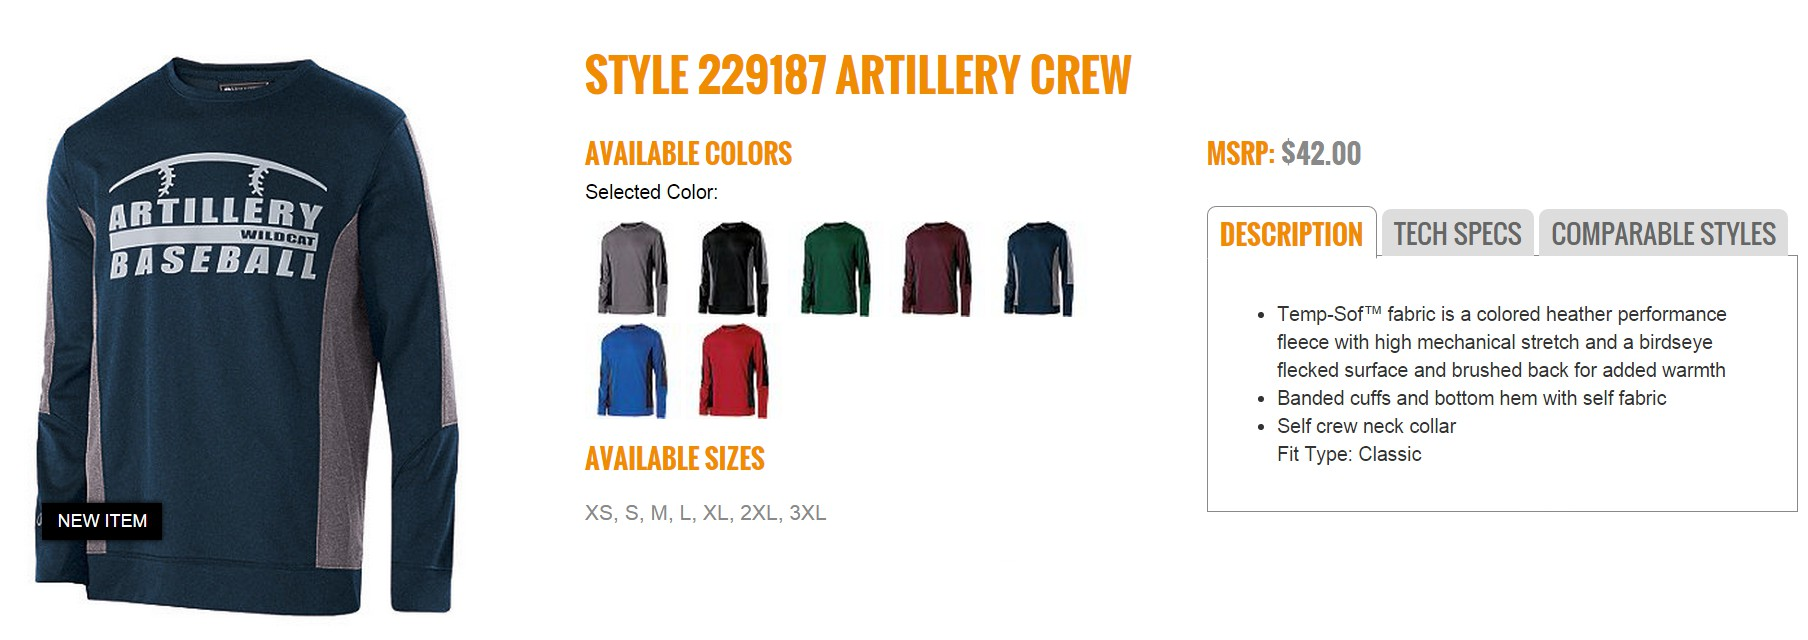 Group Fundraising Store Apparel Fundraising Holloway Artillery Crew 229187